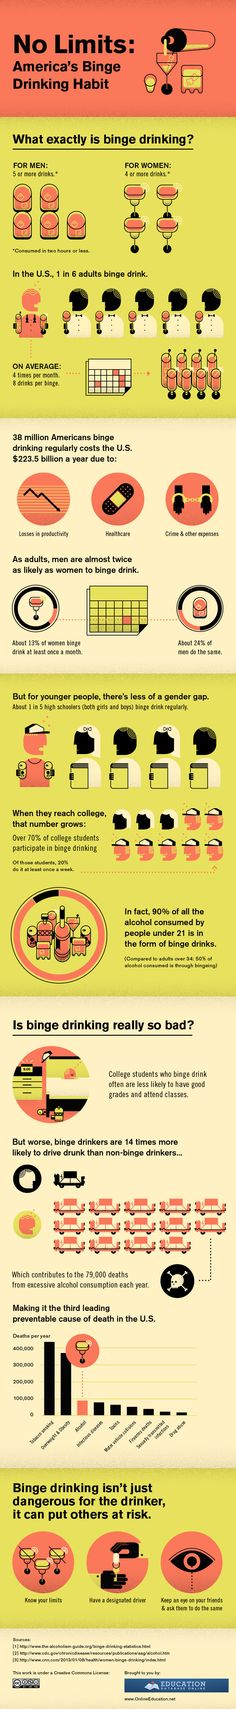 America's binge drinking habit. It's dangerous and leads to alcoholism.